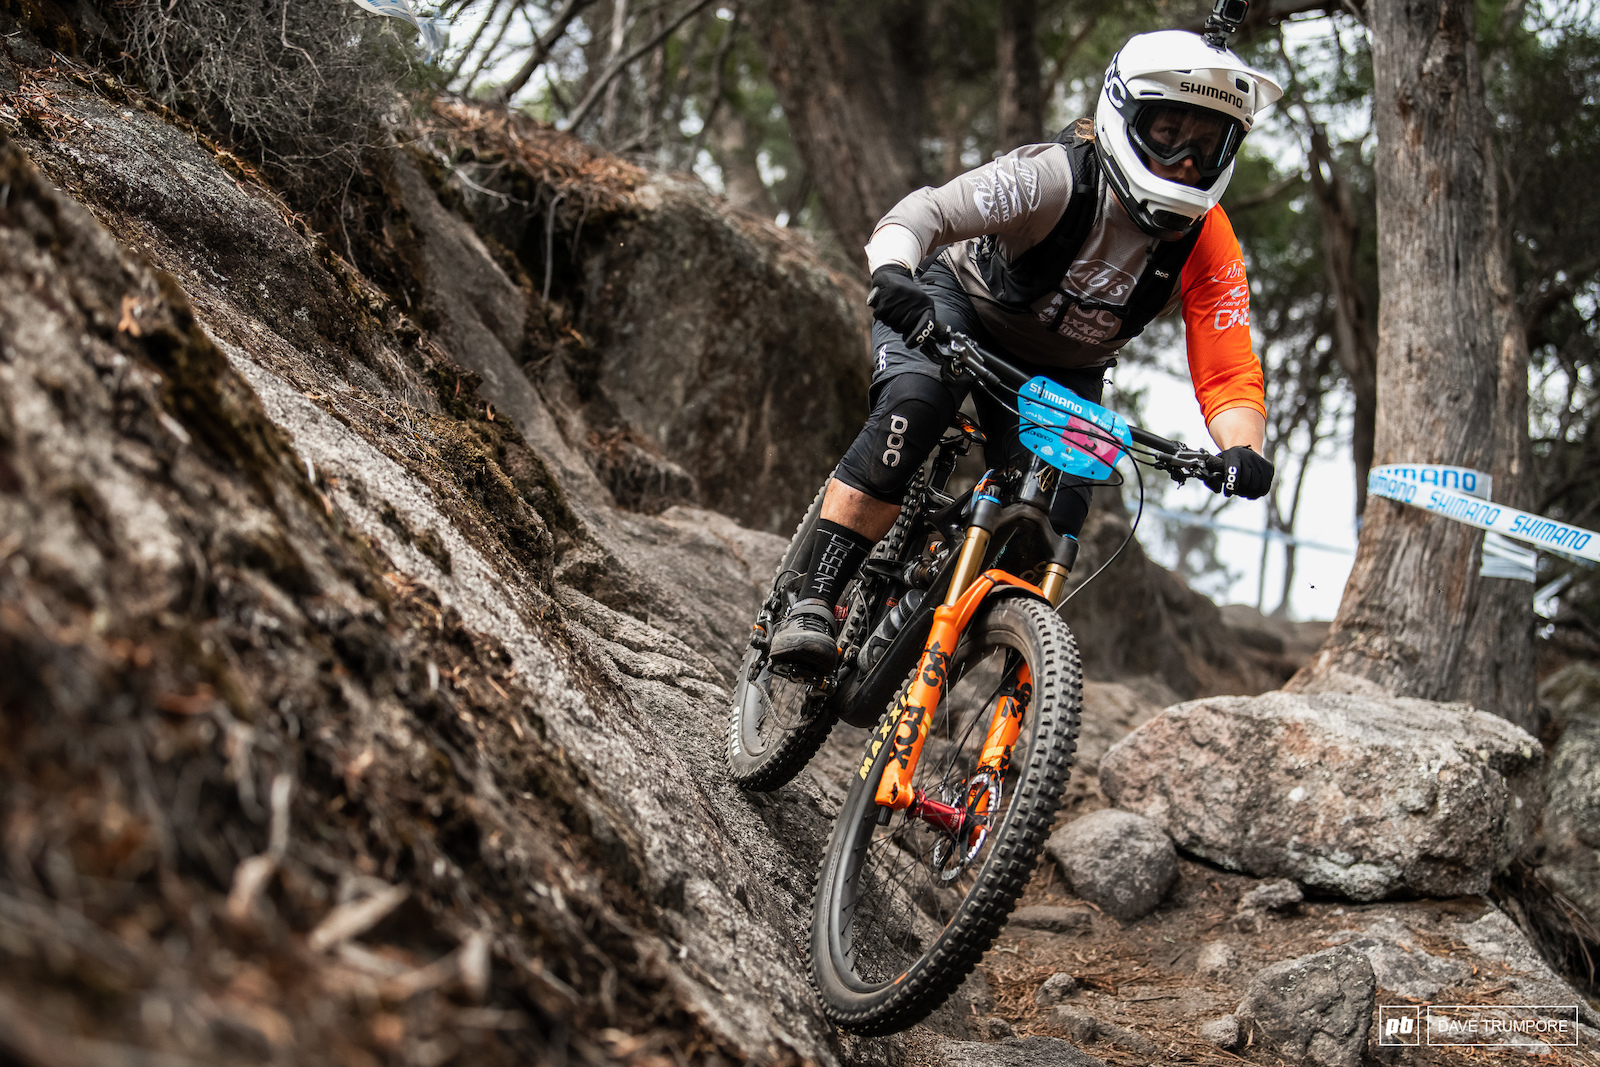 After hr first appearance on the podium last round Bex Baraona is riding with confidence in Tasmania.